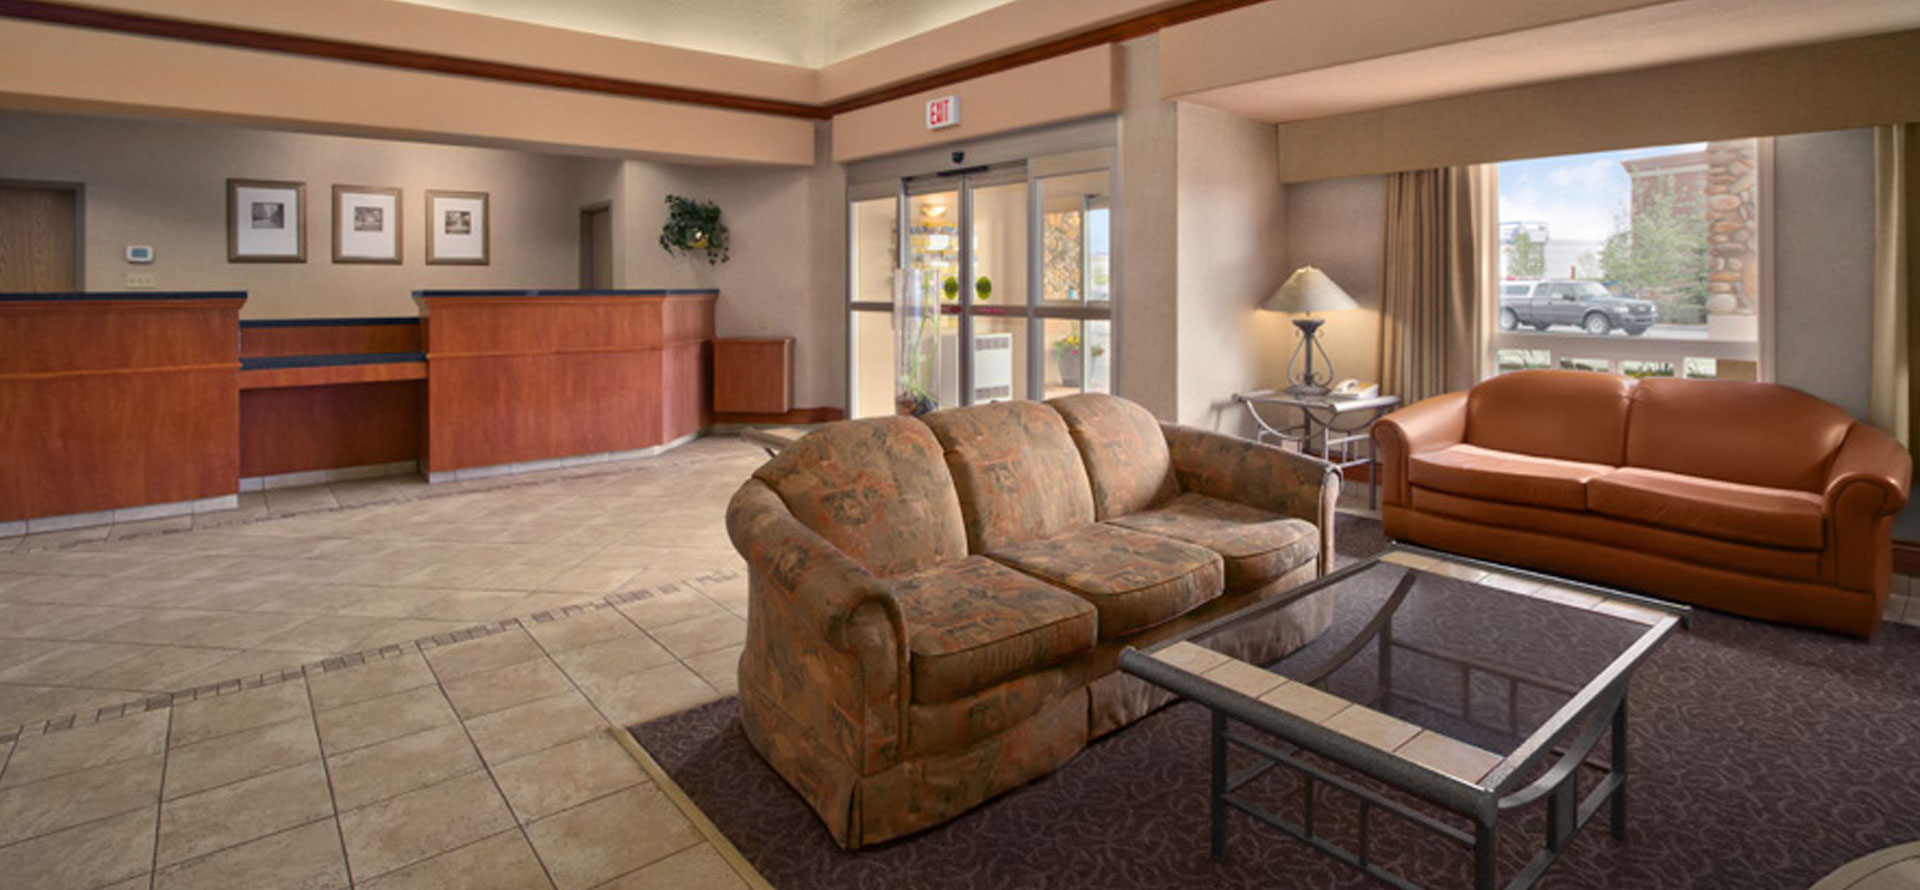 A beige fabric covered sofa, a brown leather couch and a square metal and glass coffee table sits on an area rug in the lobby of Days Inn Red Deer.